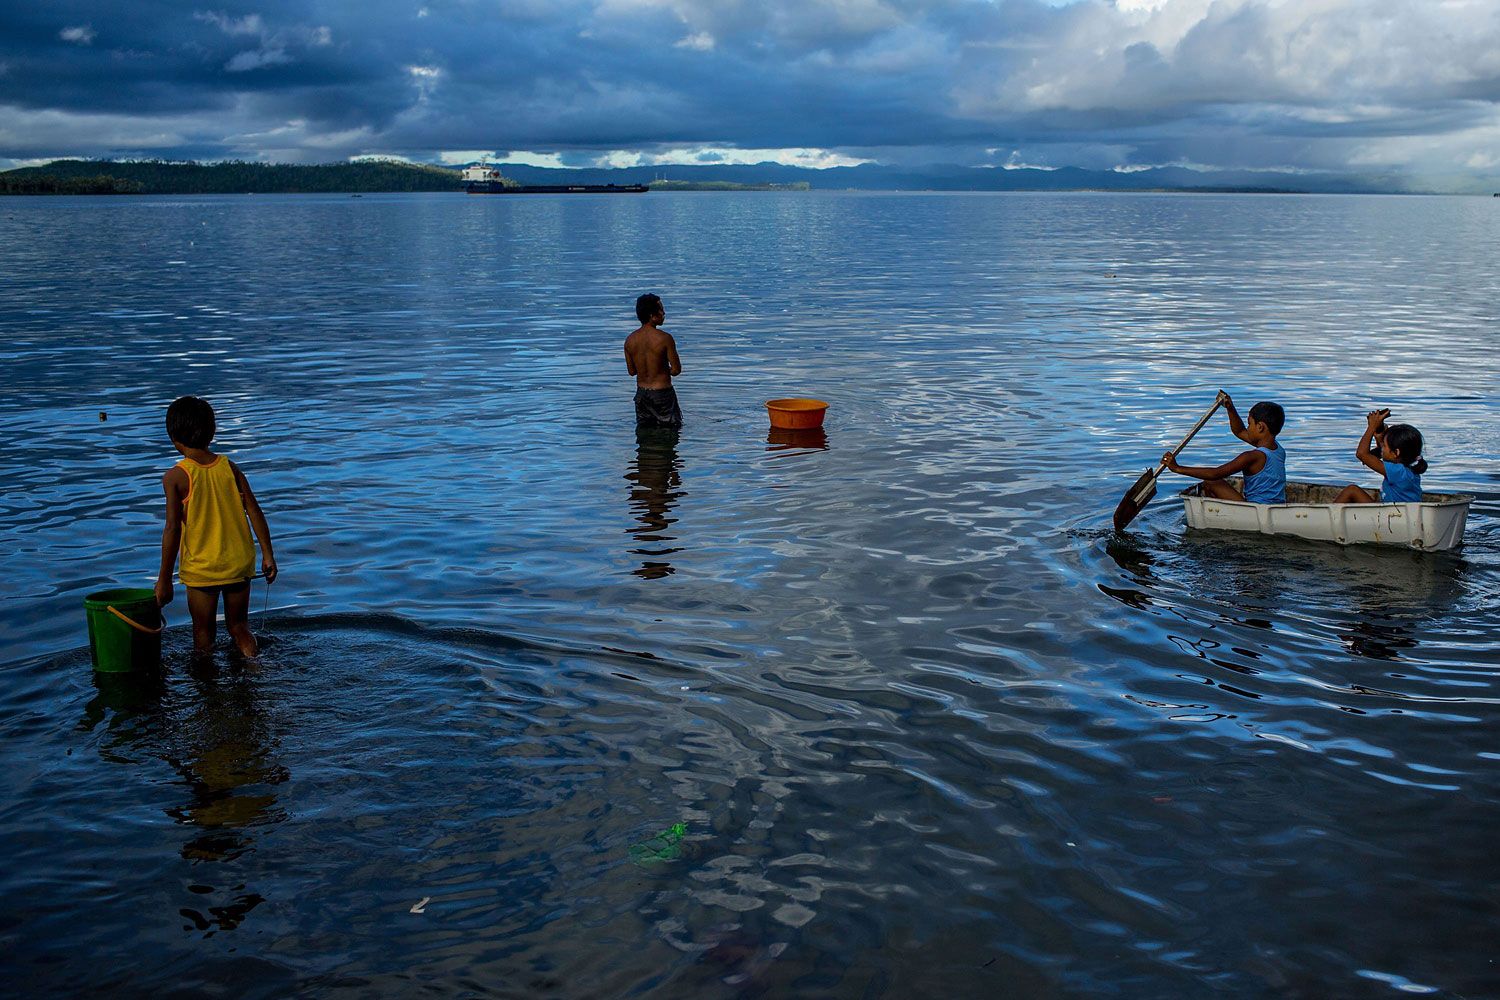 People enjoy the water off the coast of a destroyed town on April 18, 2014 in Tacloban.